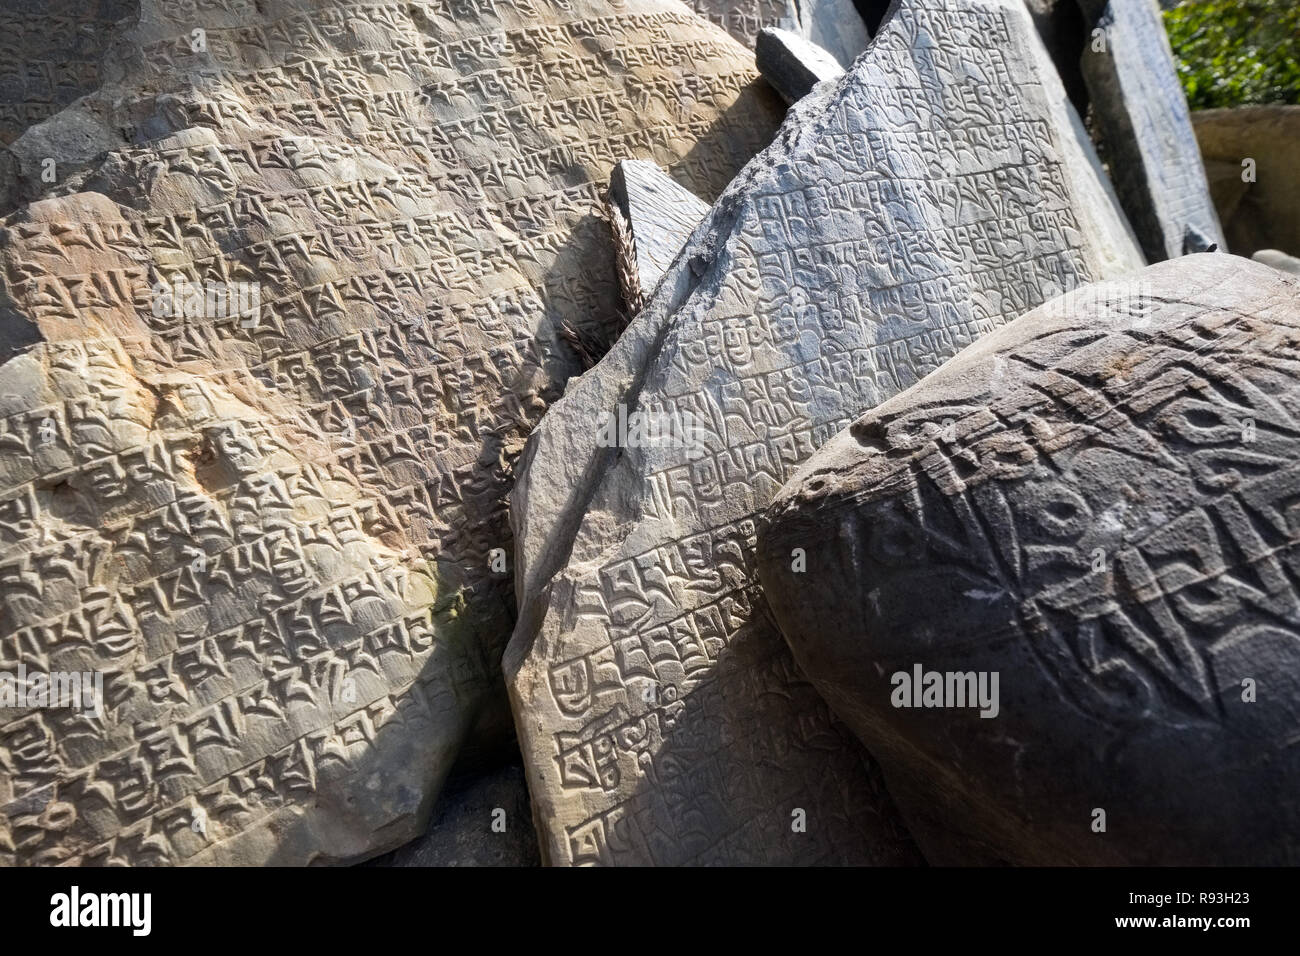 Mani stones inscribed with Buddhist mantra on a Mani Wall in the Manaslu region of Nepal - Stock Image